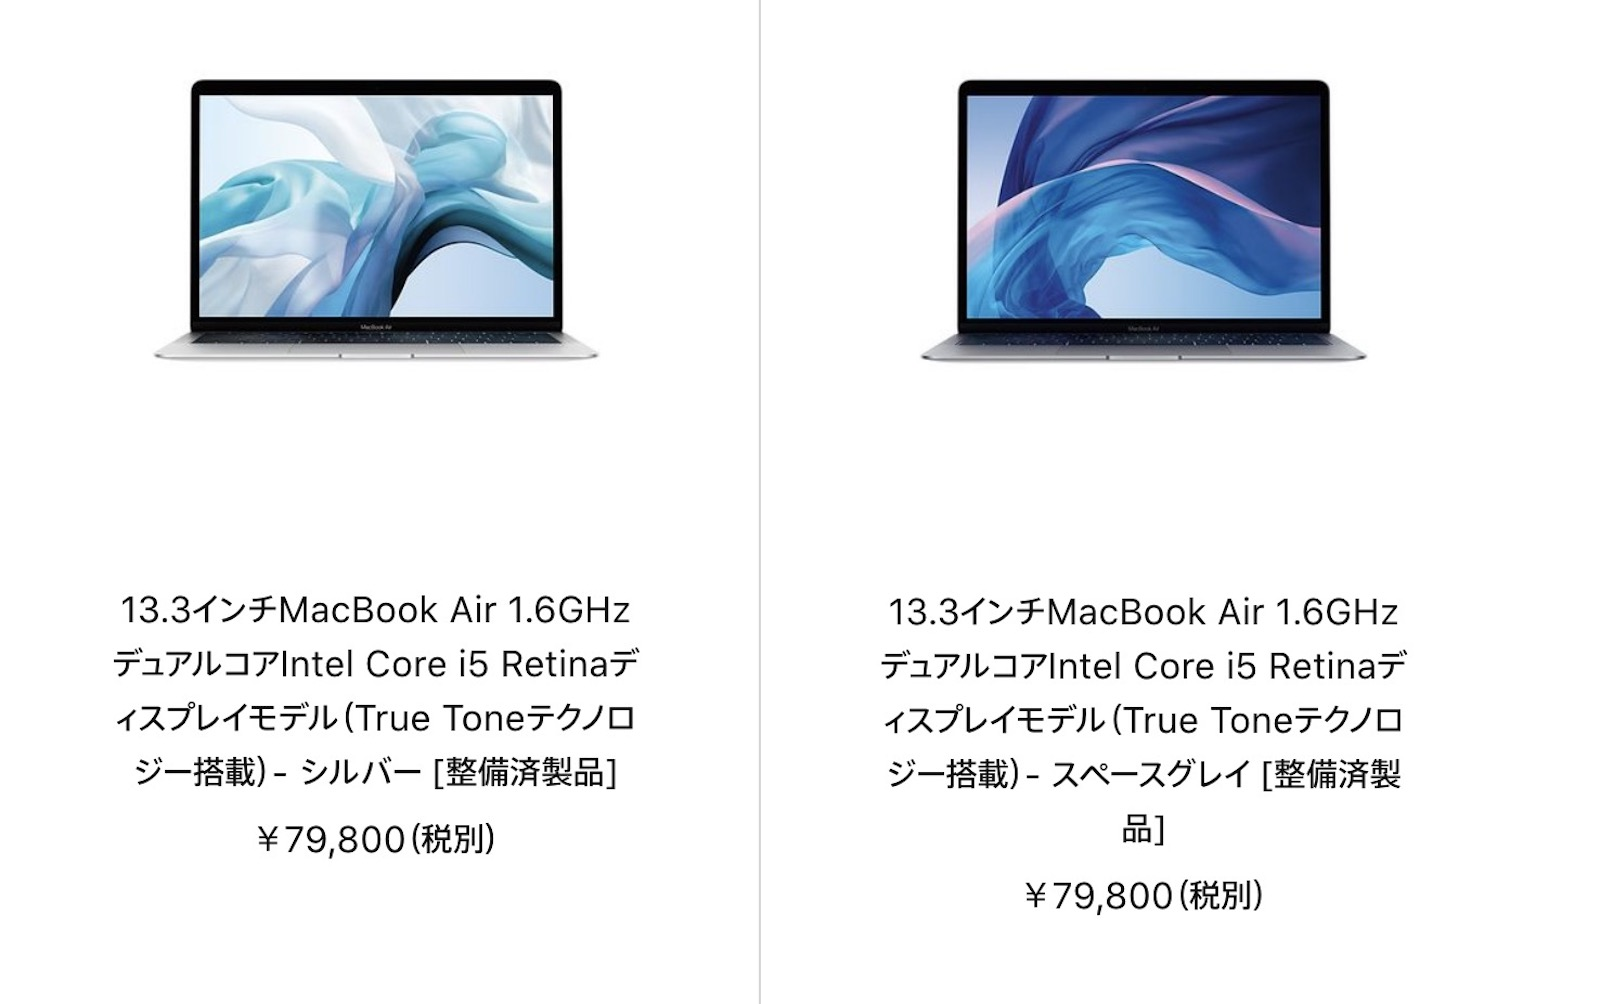 Macbook air refurished